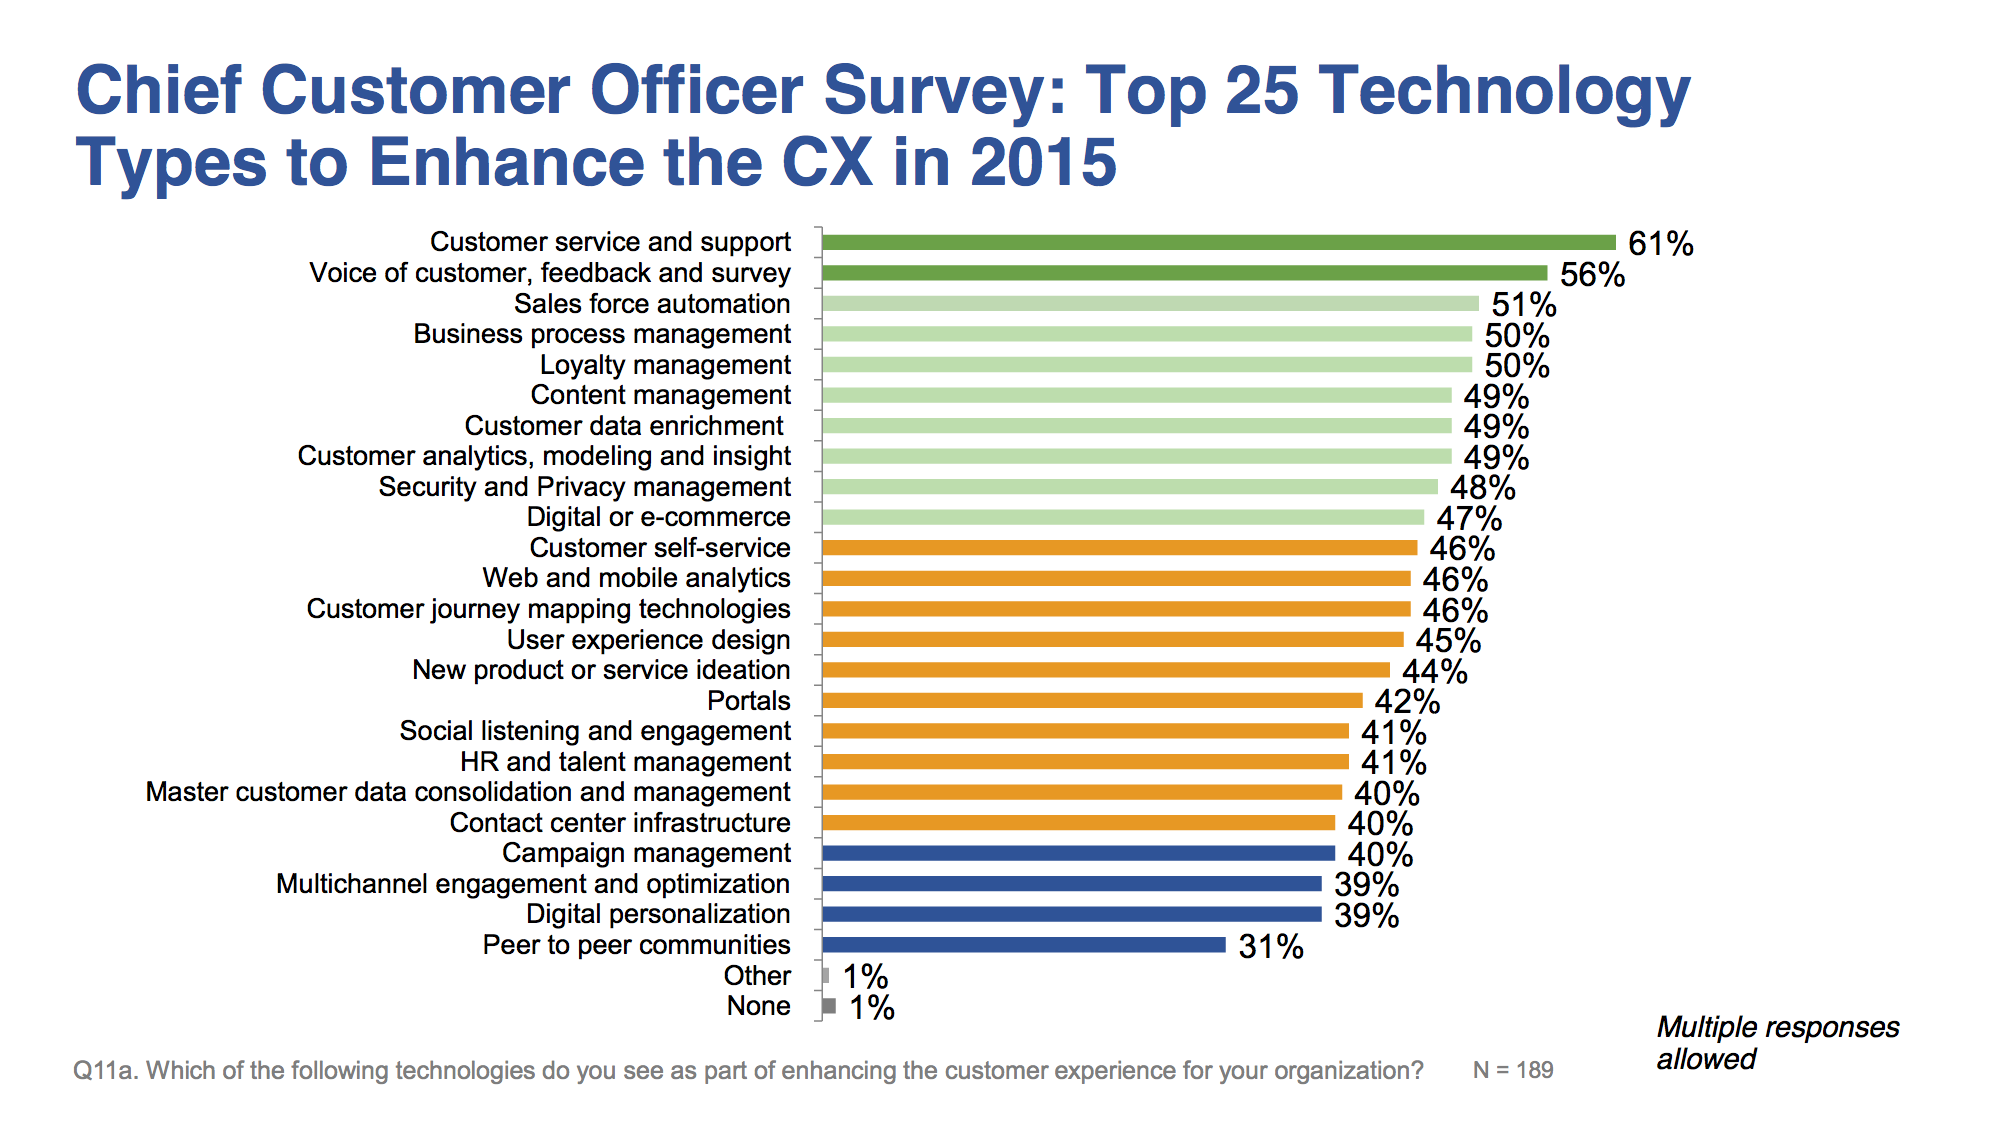 Where chief customer officers want to focus customer experience investments